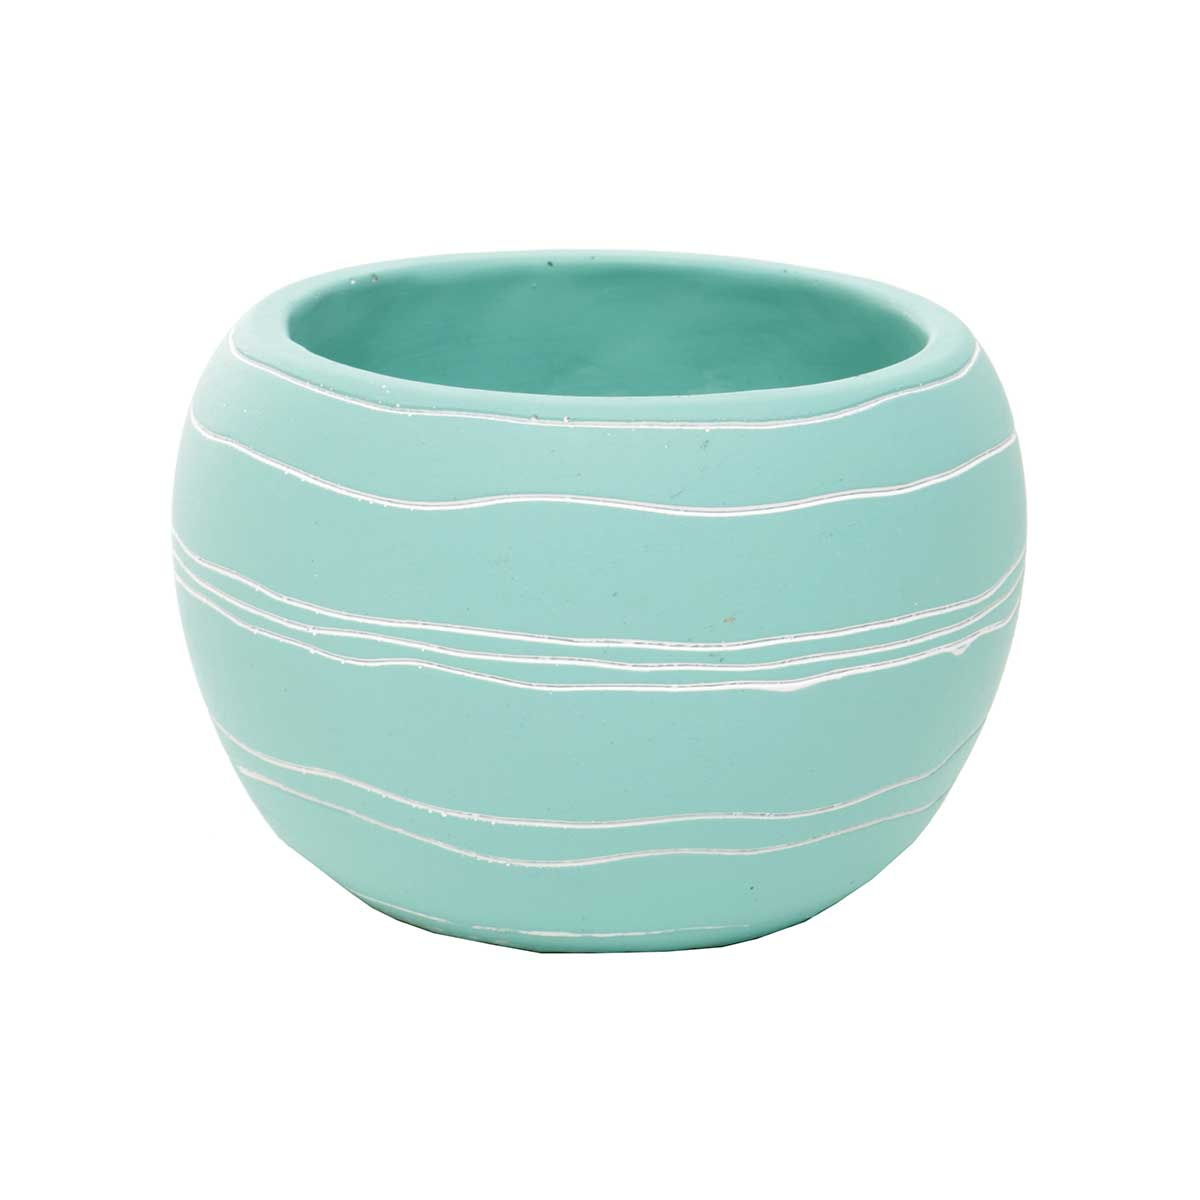 "RETRO CHIC POT 4.5""X3.5"" TEAL"